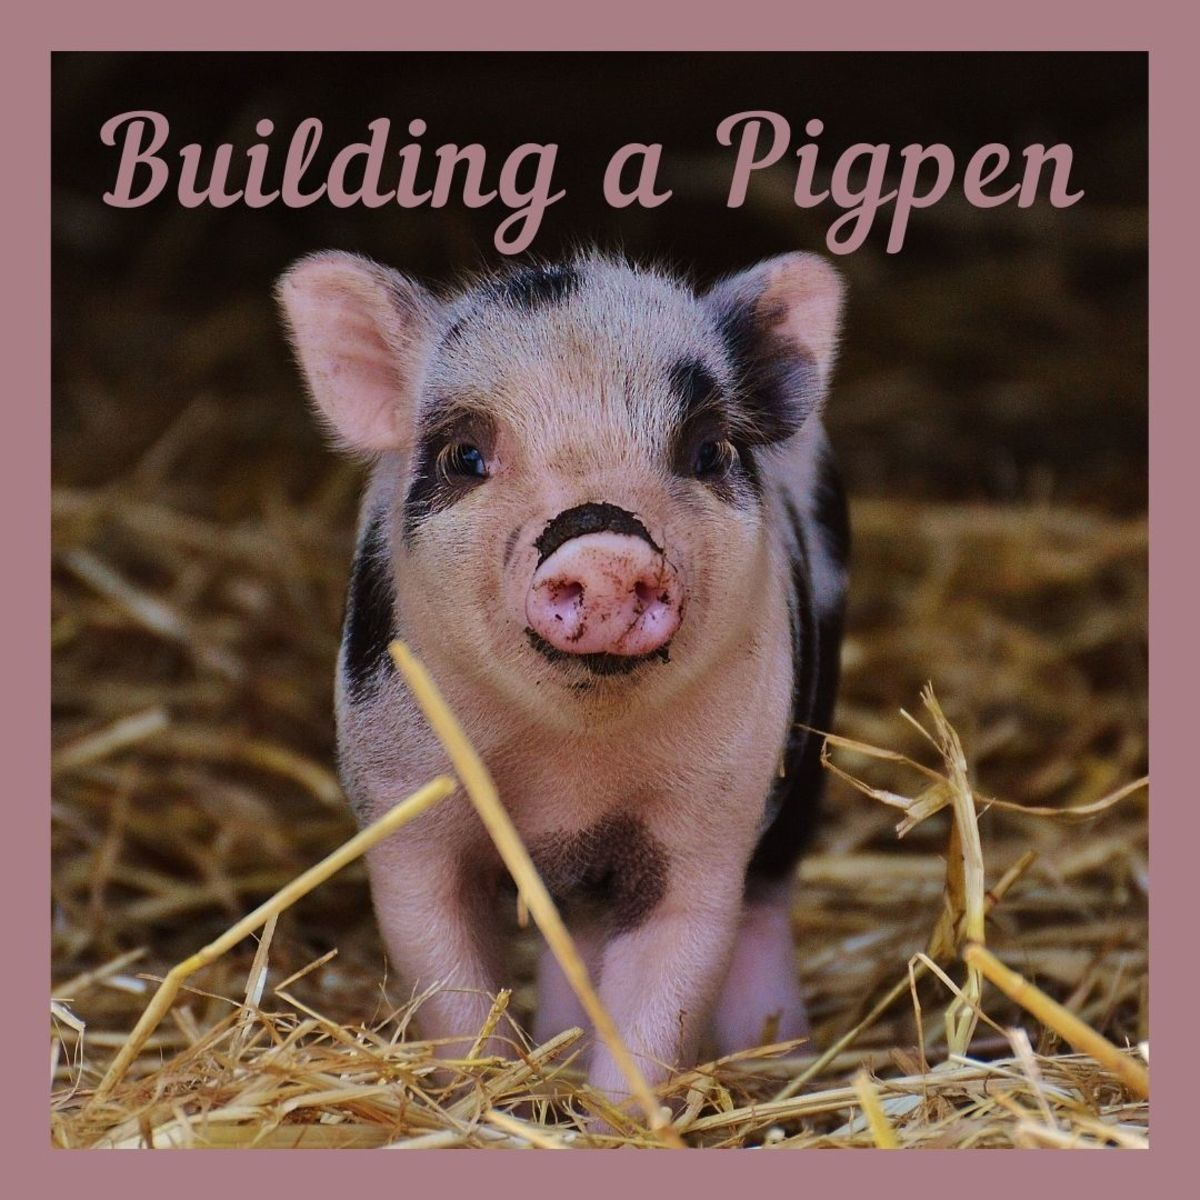 A basic guide to building a pigpen